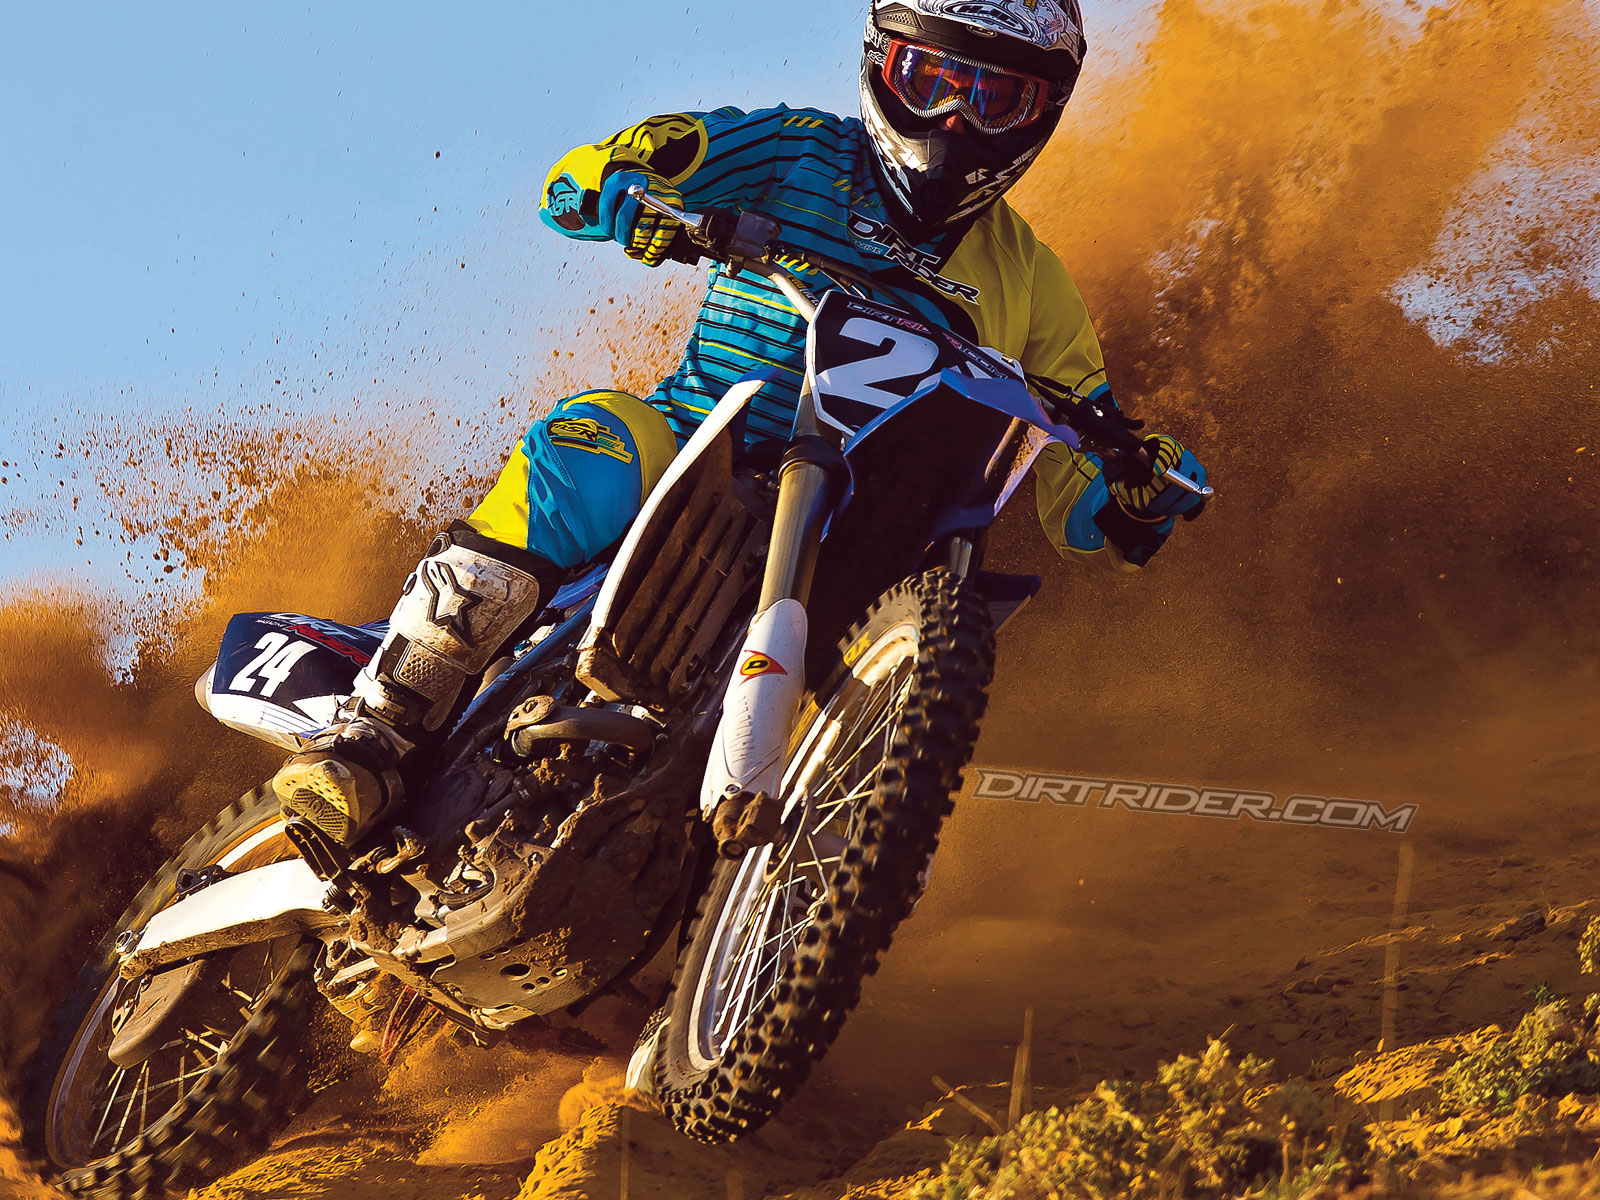 Dirt bike wallpapers |Clickandseeworld is all about Funny|Amazing|pictures wallapers images